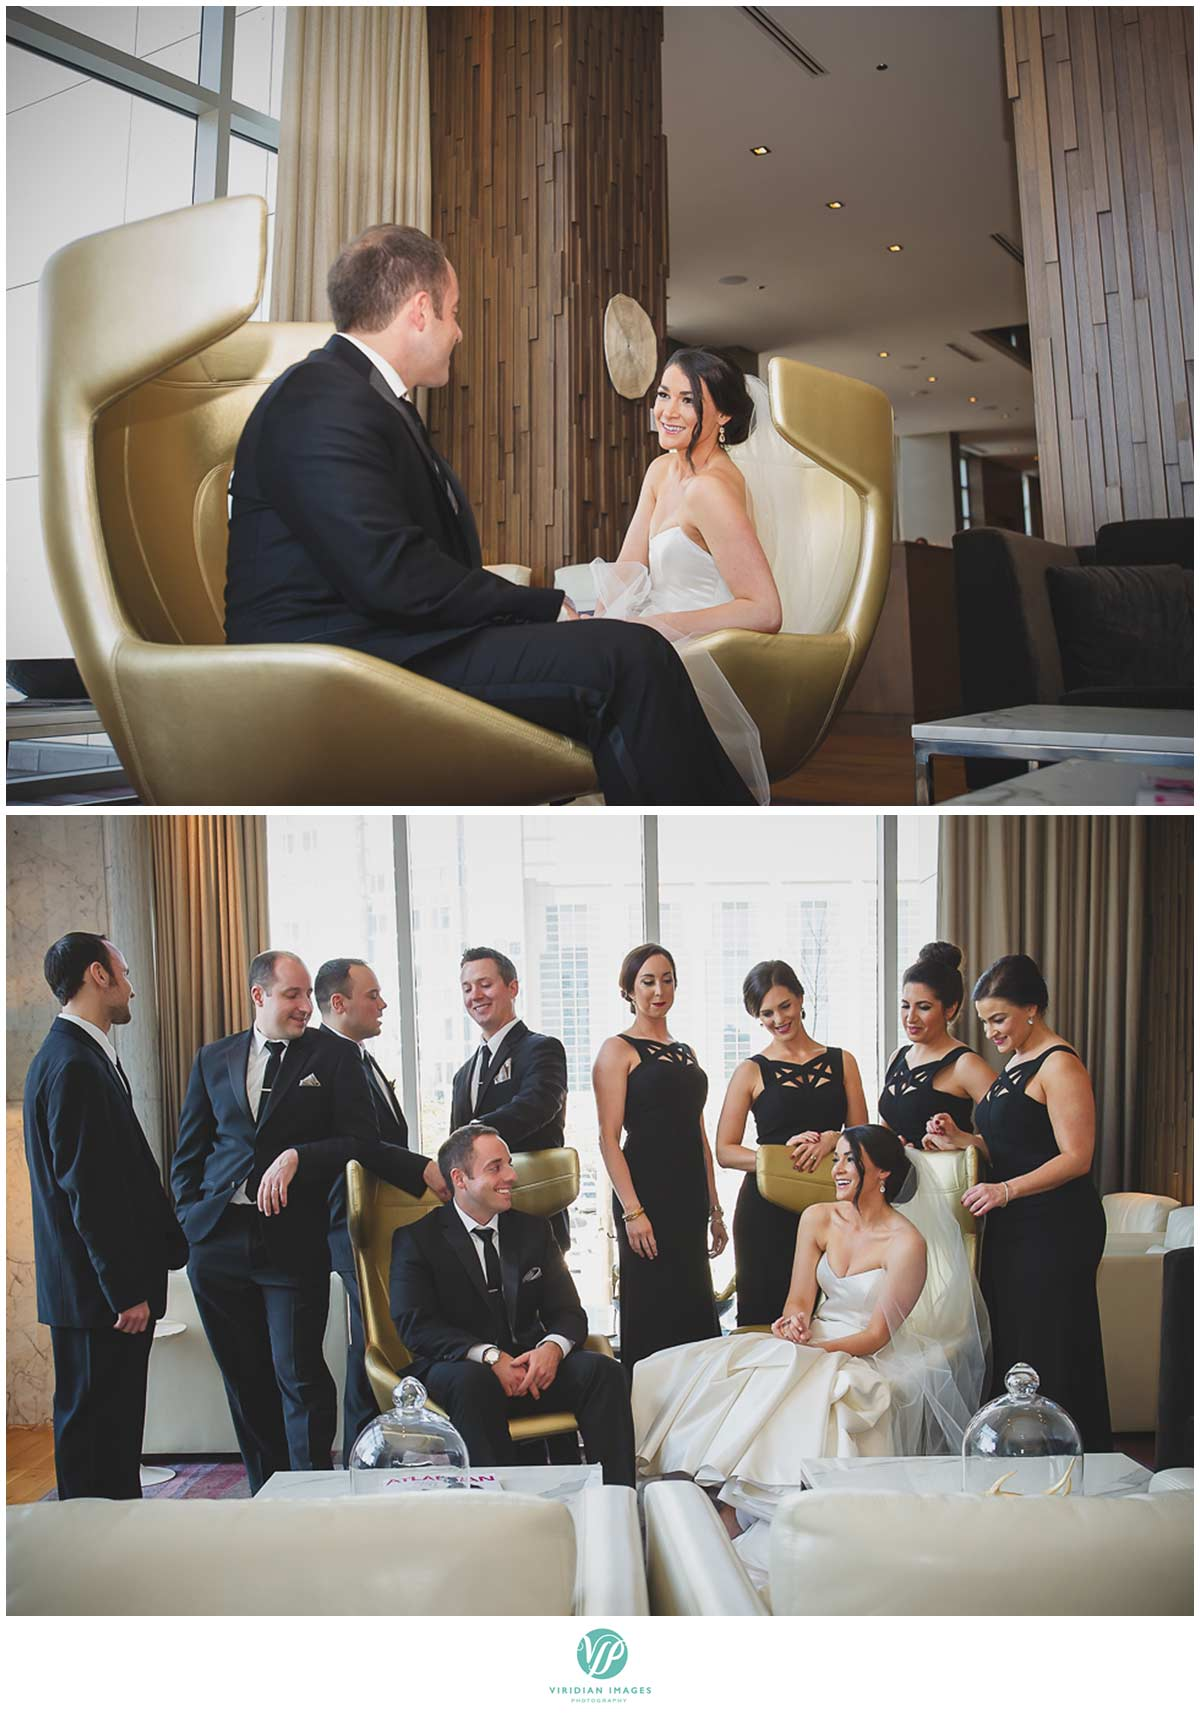 Peachtree_Club_Atlanta_Wedding_Viridian_Images_Photography-19